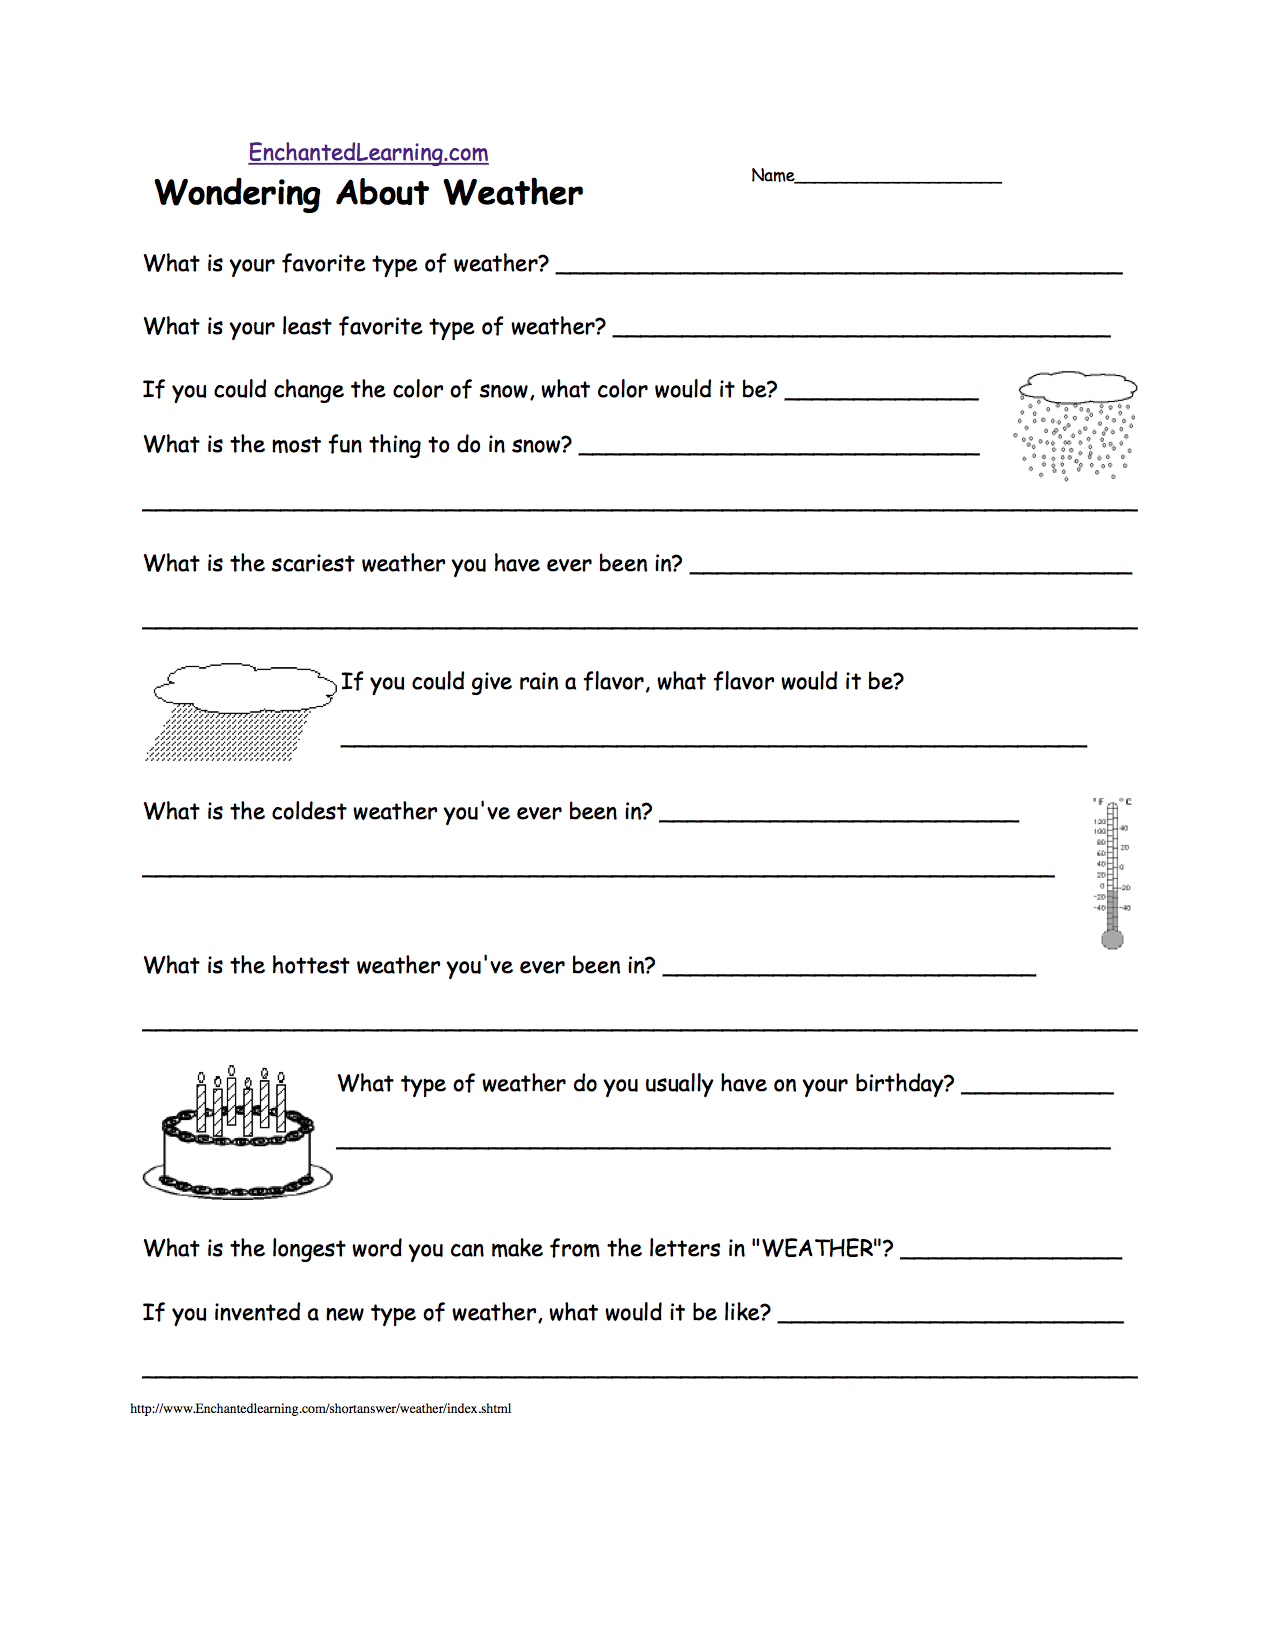 Weather-Related Writing Activities at EnchantedLearning.com